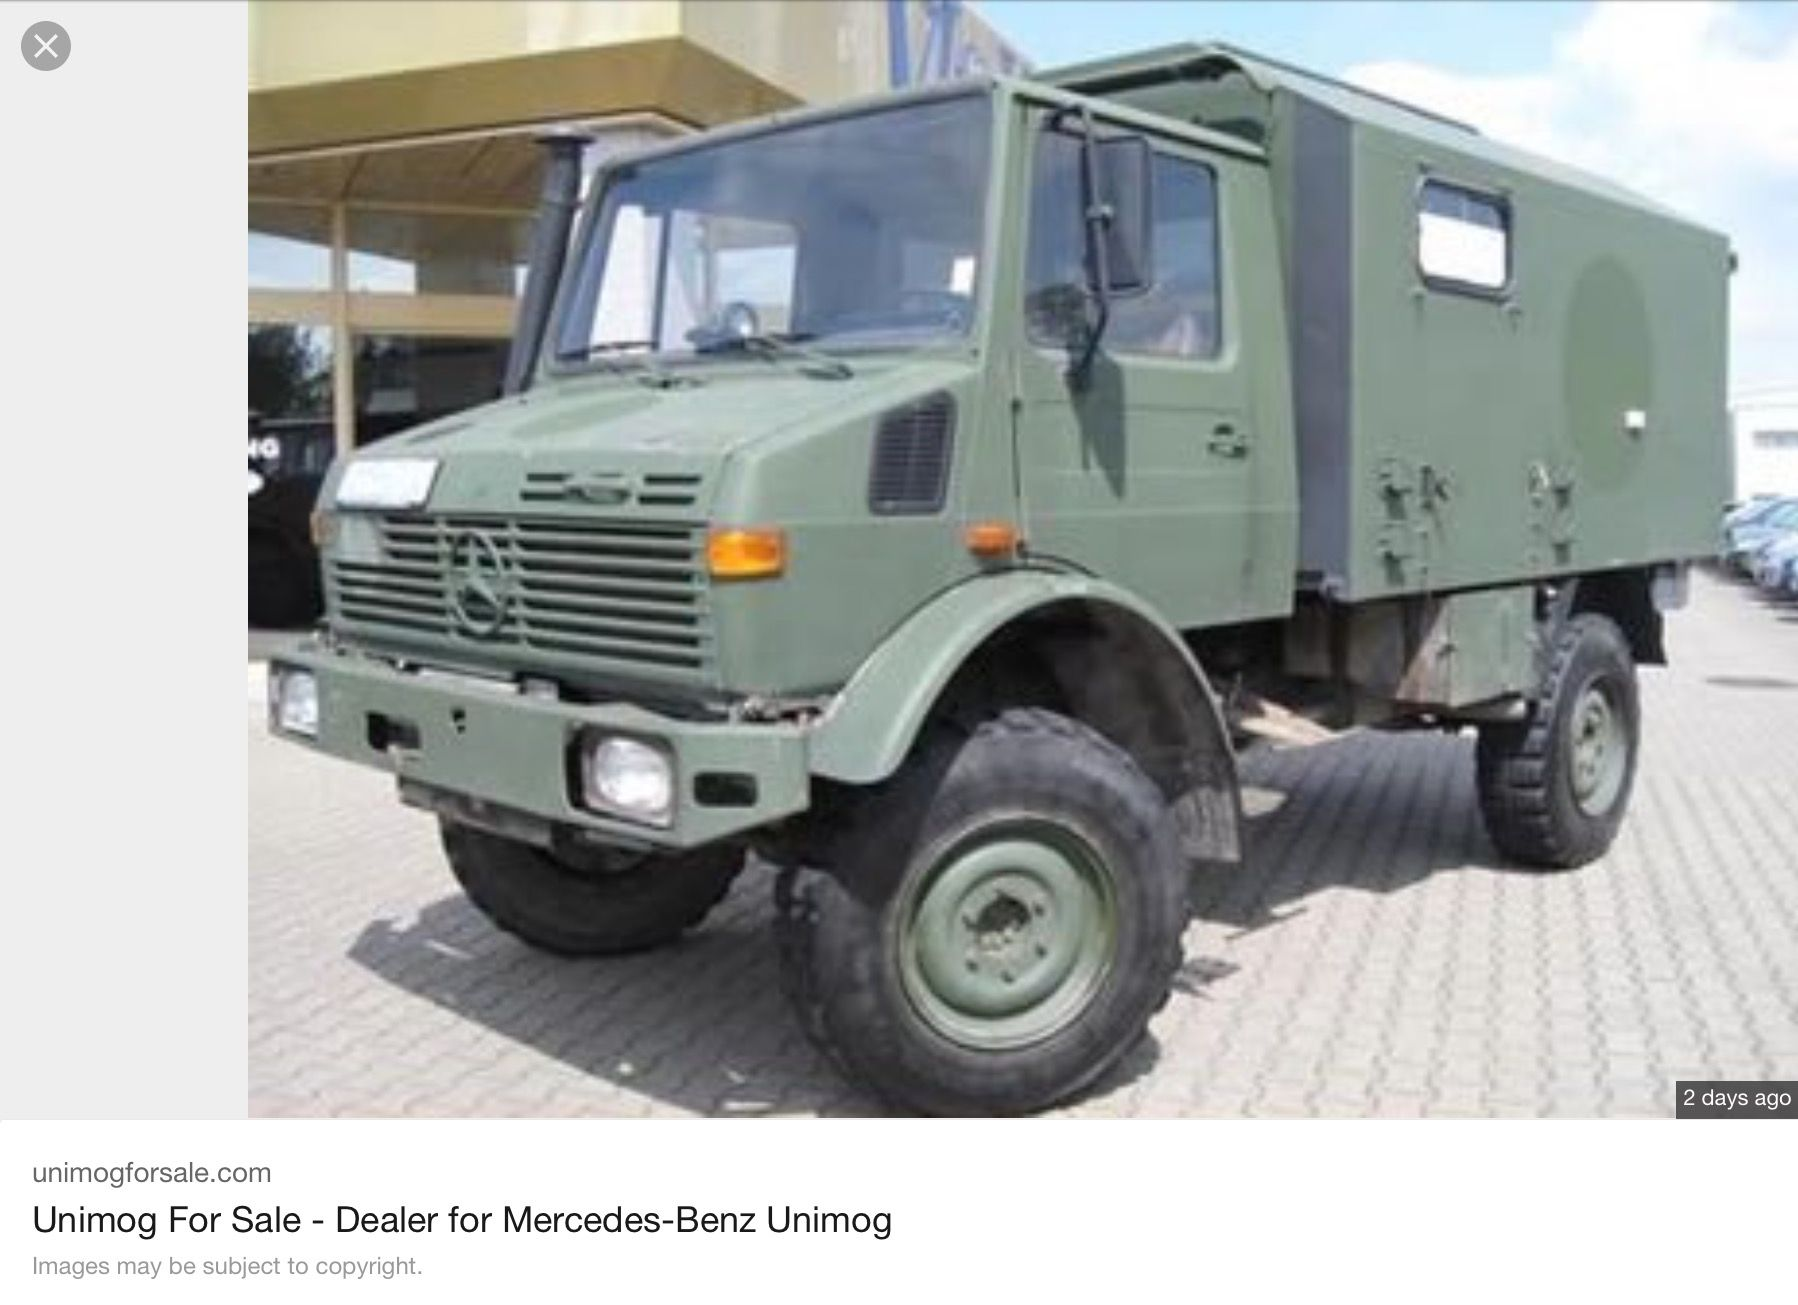 Pin by dale booth on Unimog Pinterest